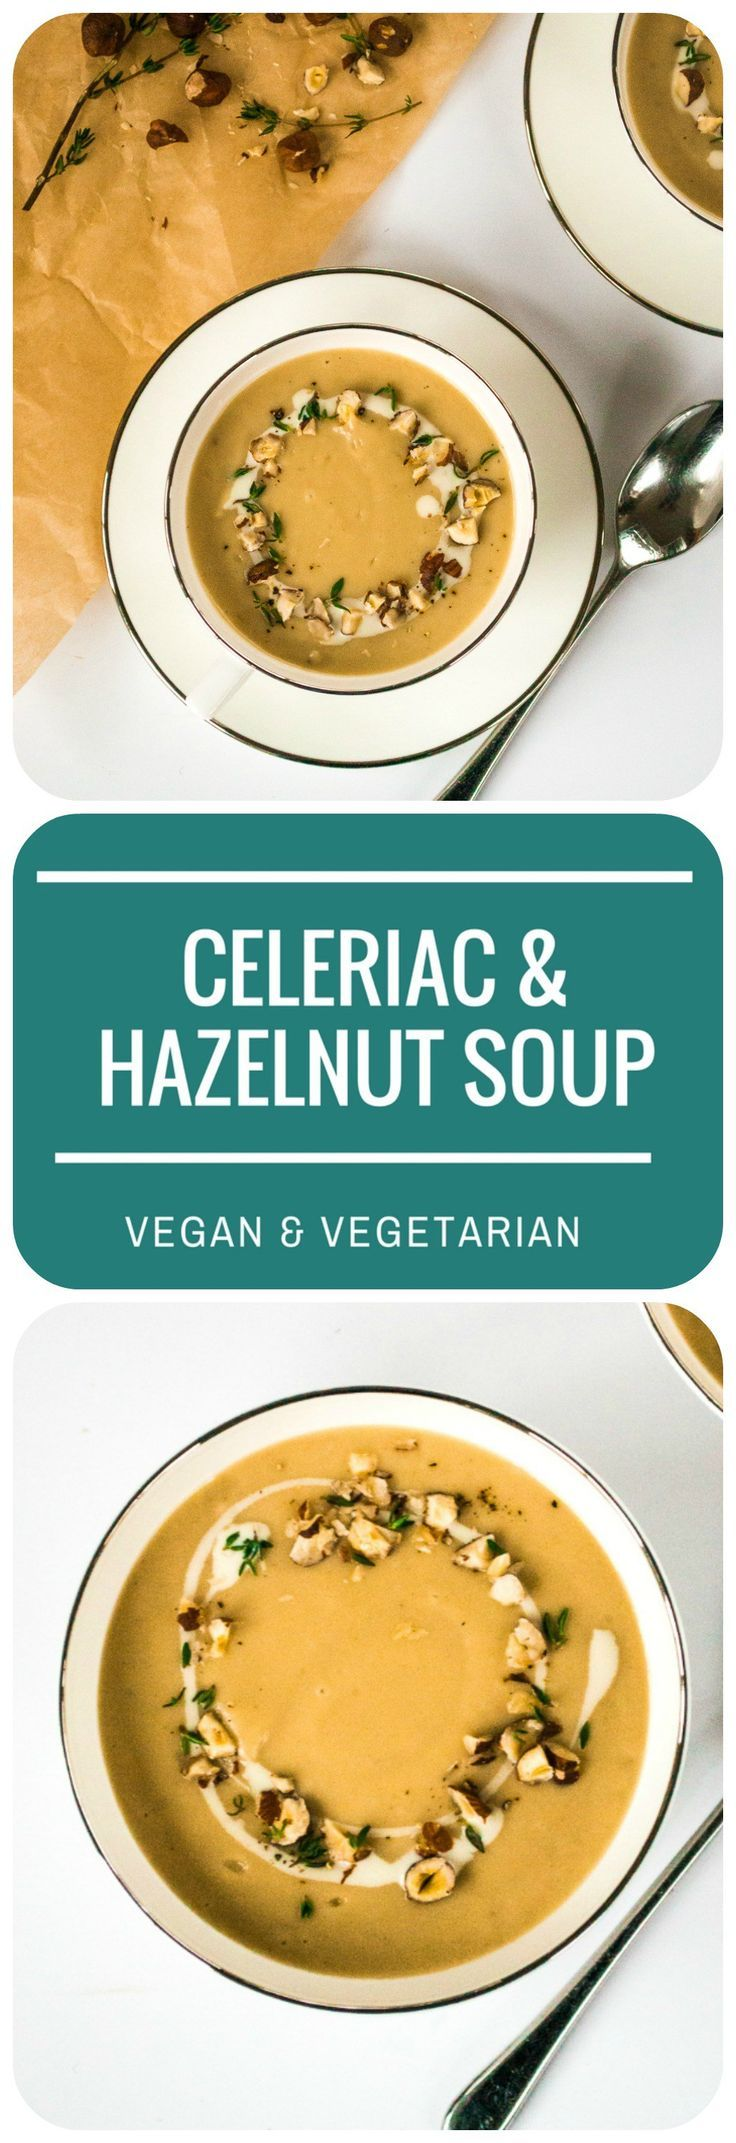 This velvet-smooth and creamy Celeriac & Hazelnut Soup makes an elegant dinner party starter served in pretty teacups, or a hearty lunch with crusty bread! | Vegan & Vegetarian